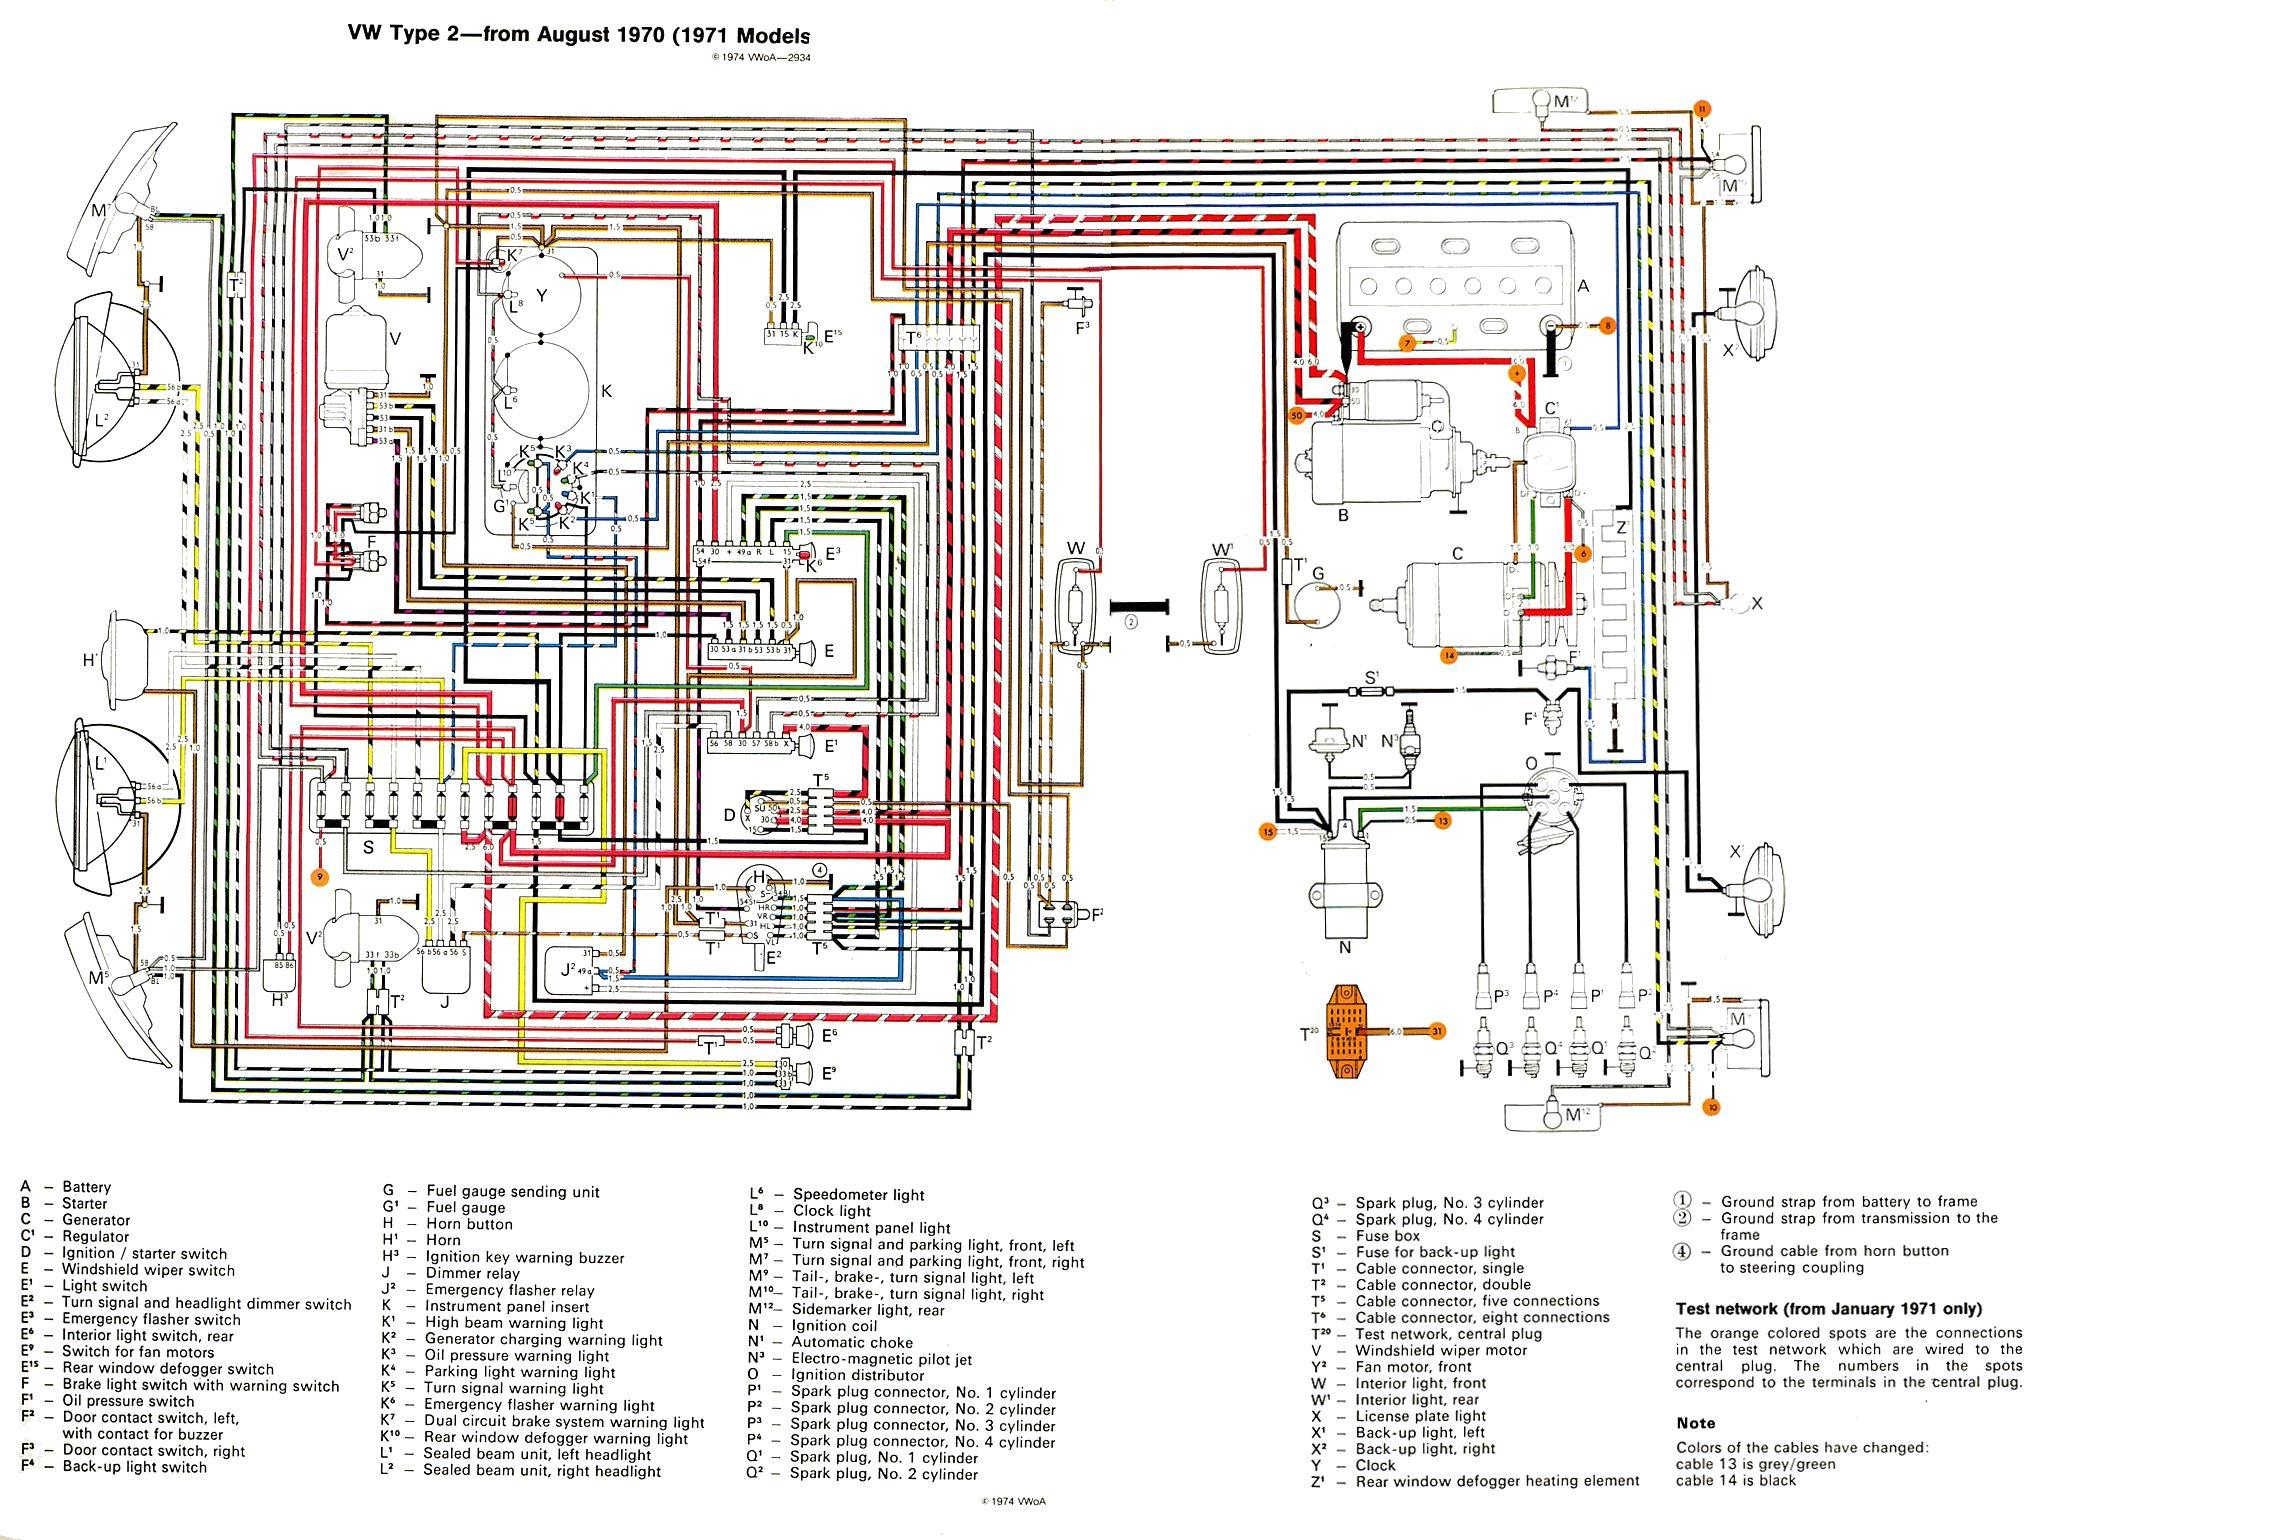 1979 vw wiring diagram wiring diagram 1600 transporter supplementary heater diagram wiring 1979 vw wiring diagram [ 2296 x 1540 Pixel ]